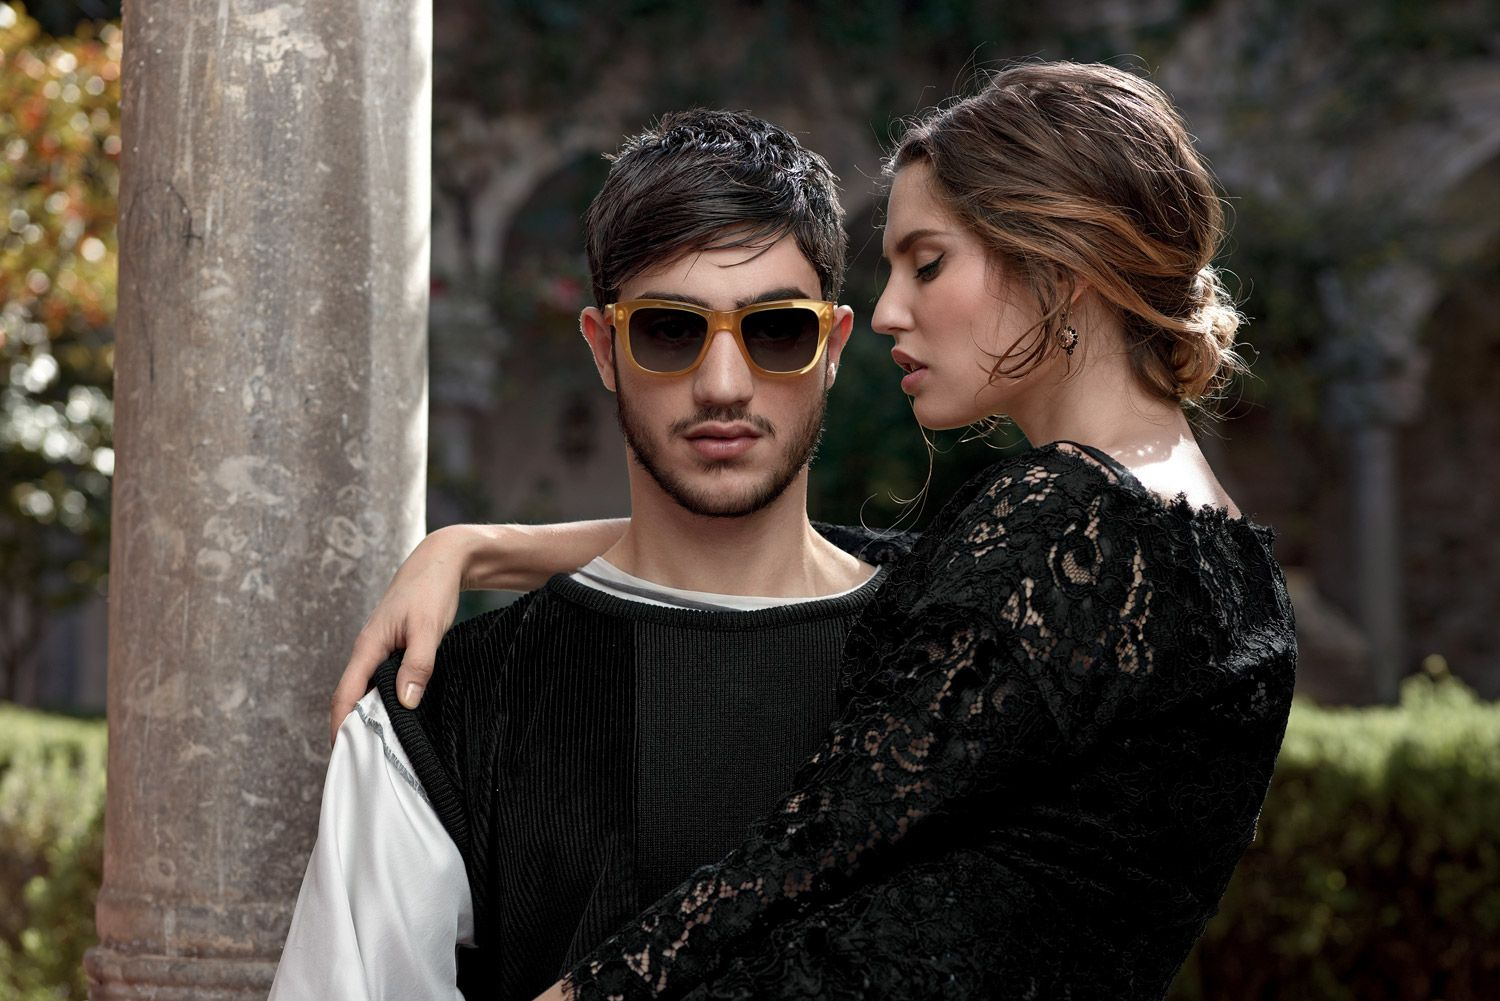 Dolce & Gabbana Eyewear Advertising Campaign – Sunglasses and Ophthalmic